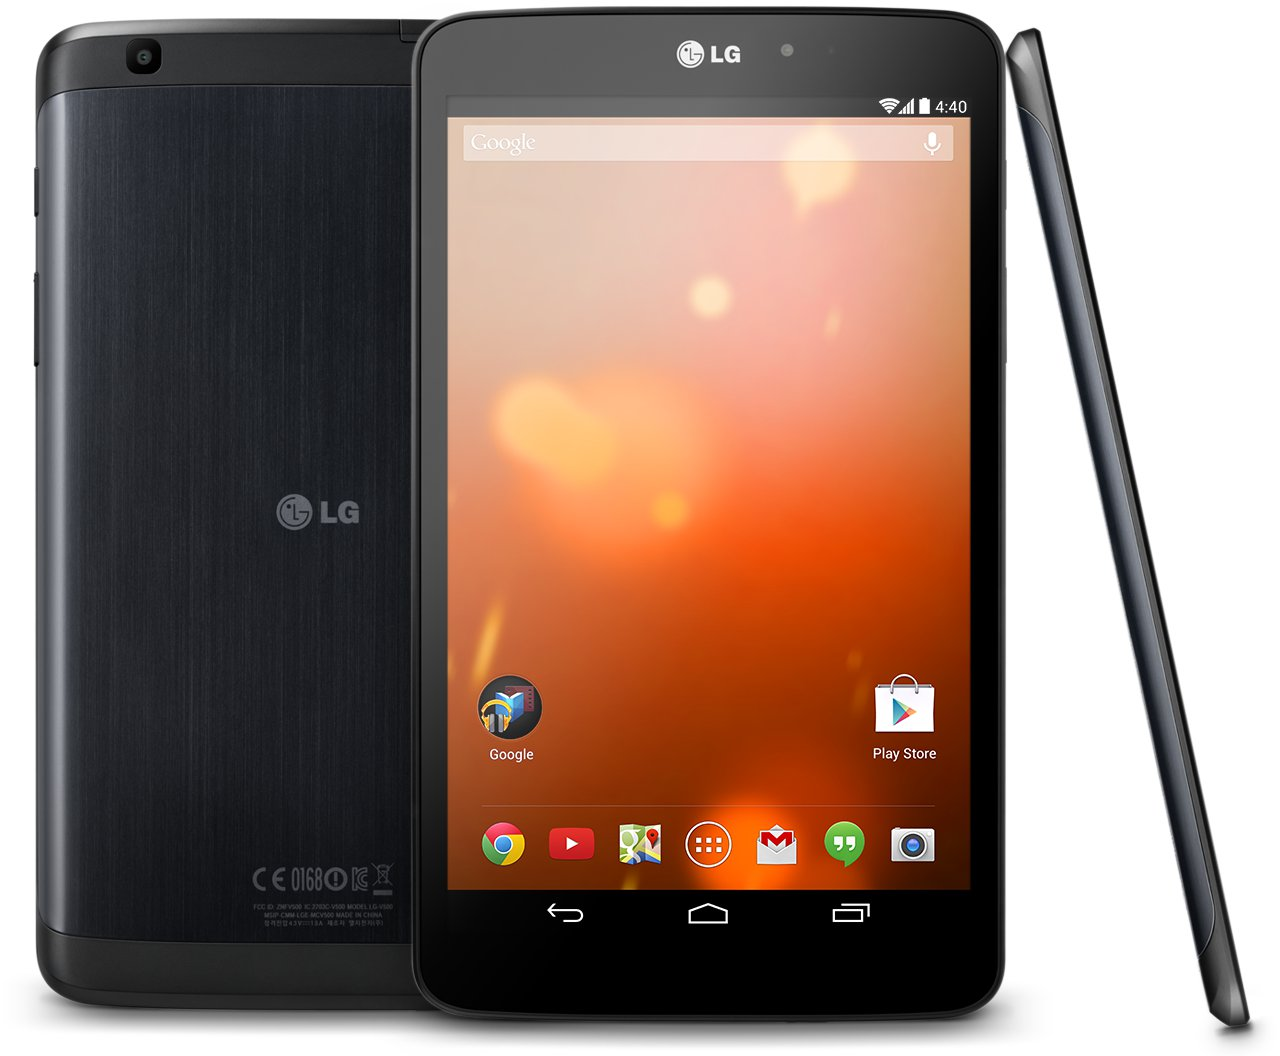 LG G Pad 8.3 Google Play Edition Is Next To Get Android Lollipop